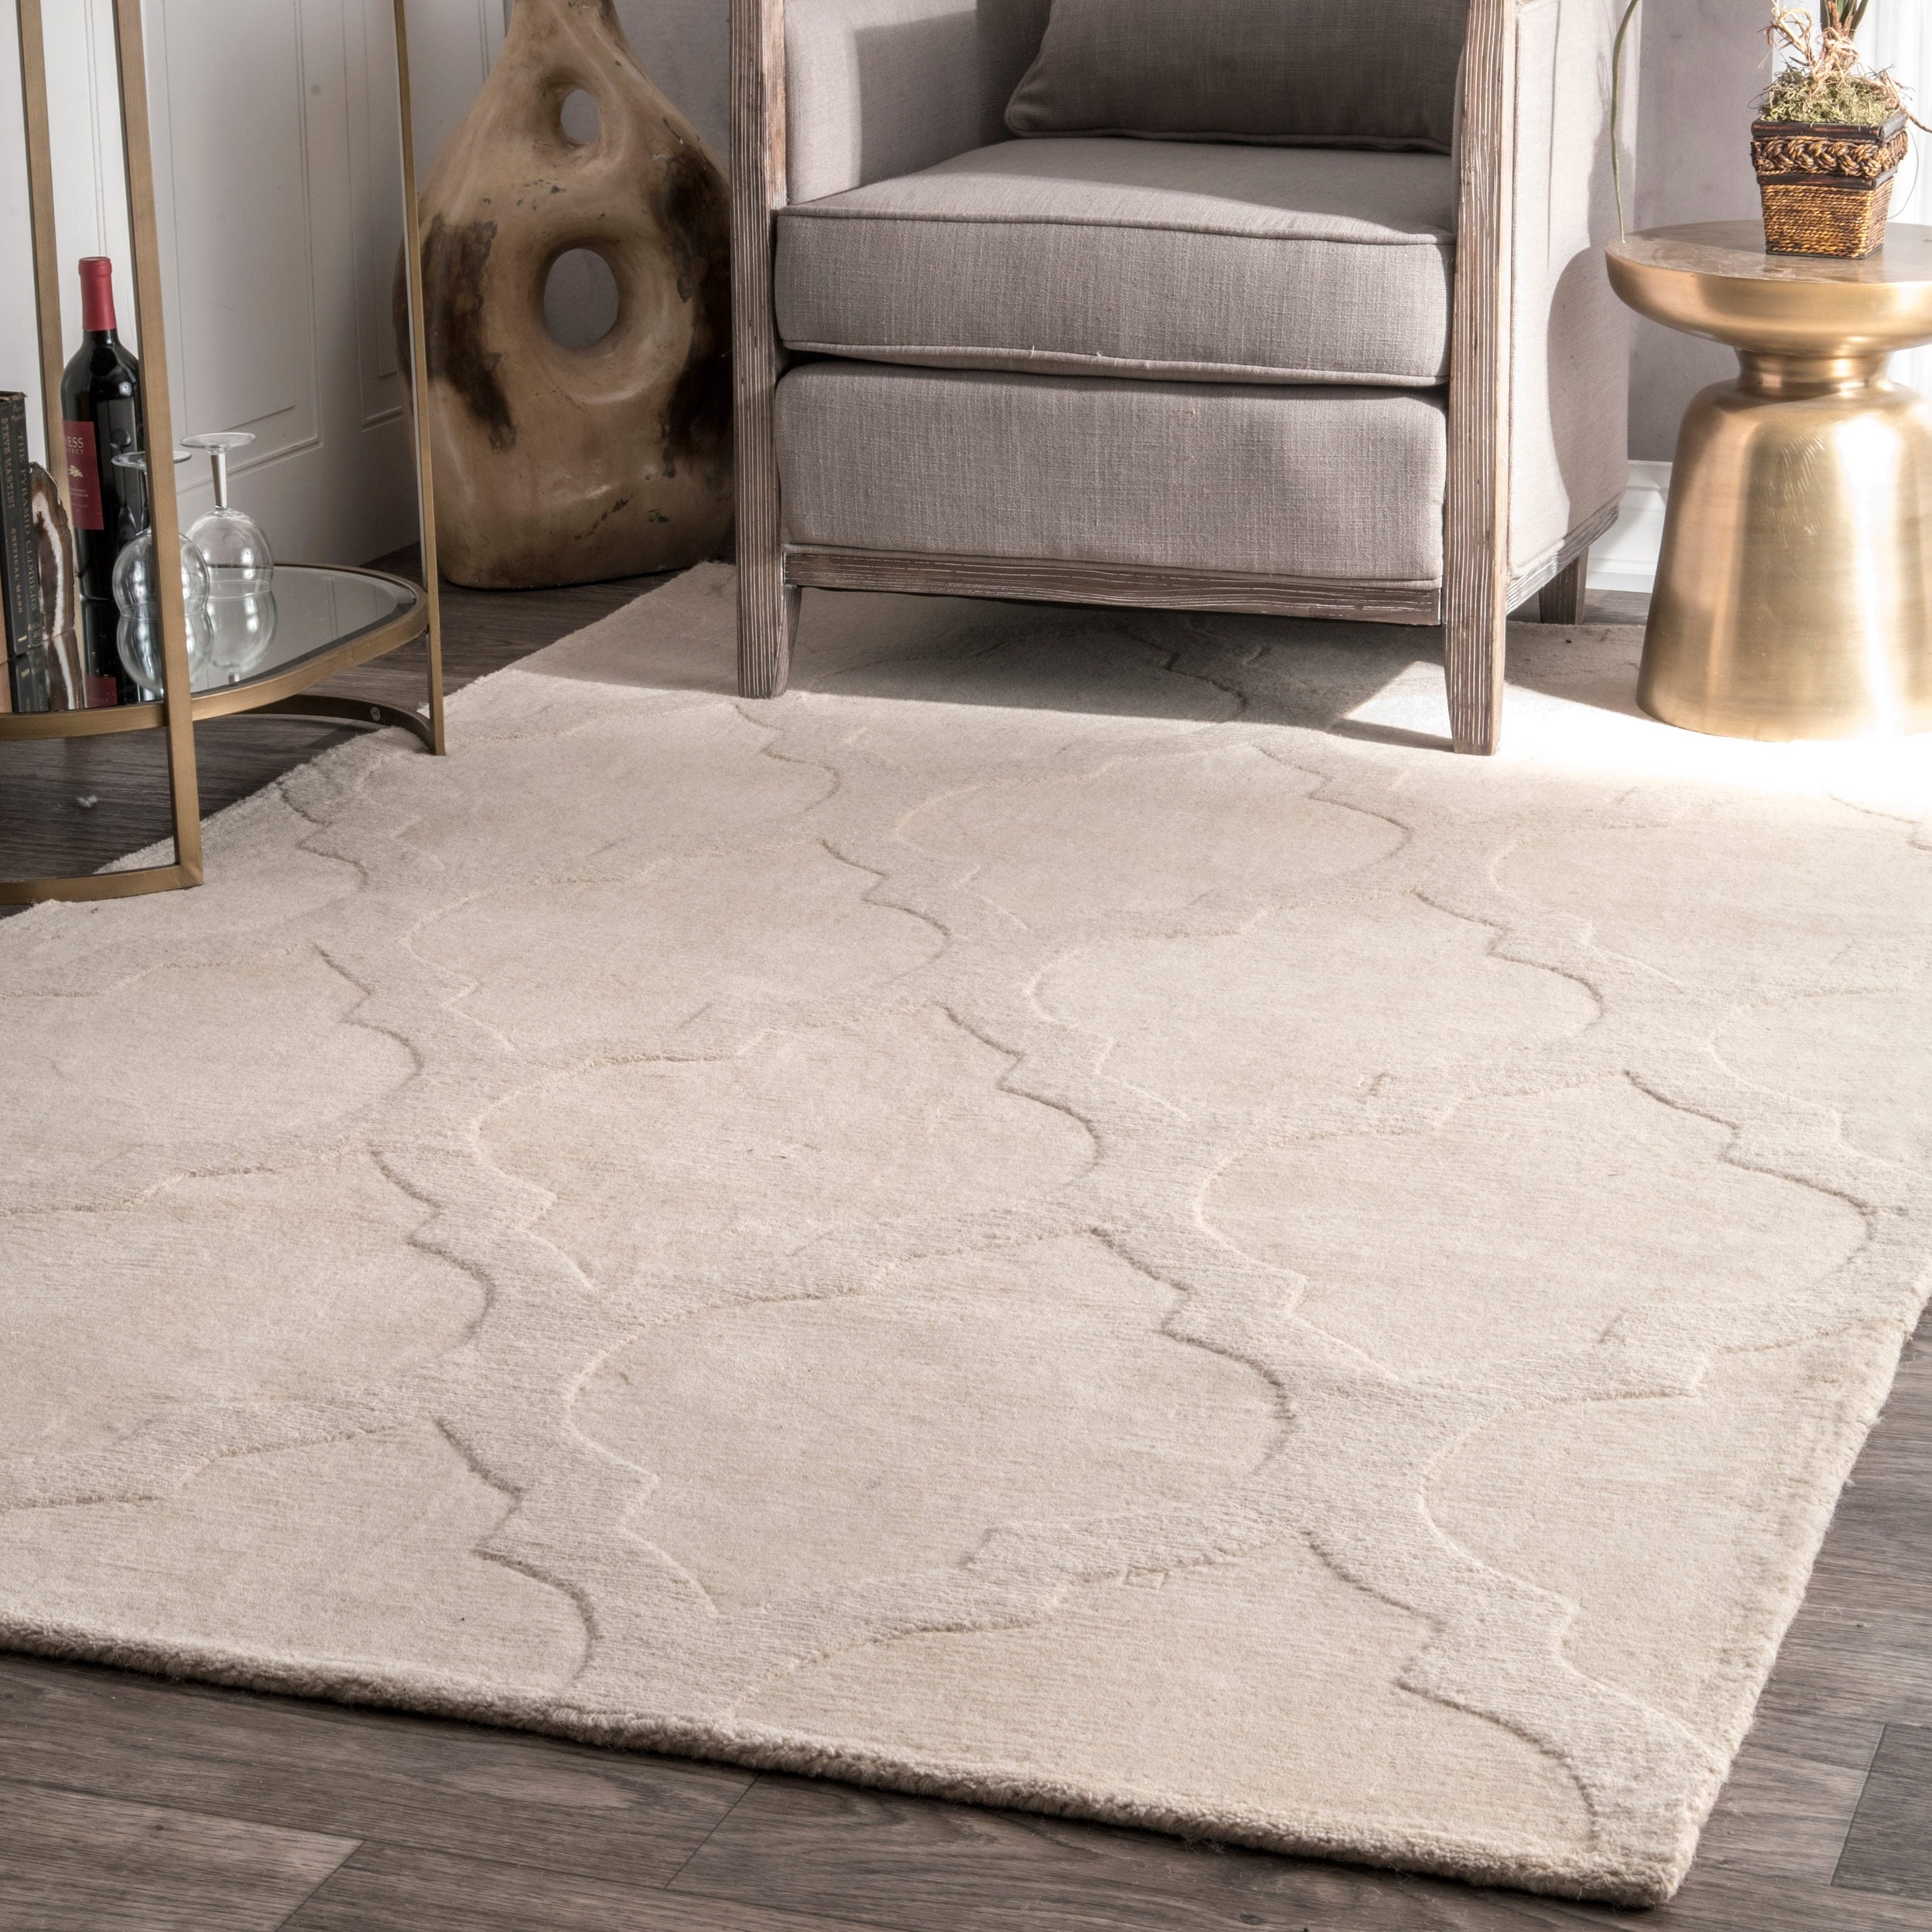 nuLOOM Handmade Abstract Raised Trellis Wool Cream Runner Rug 2 6 x